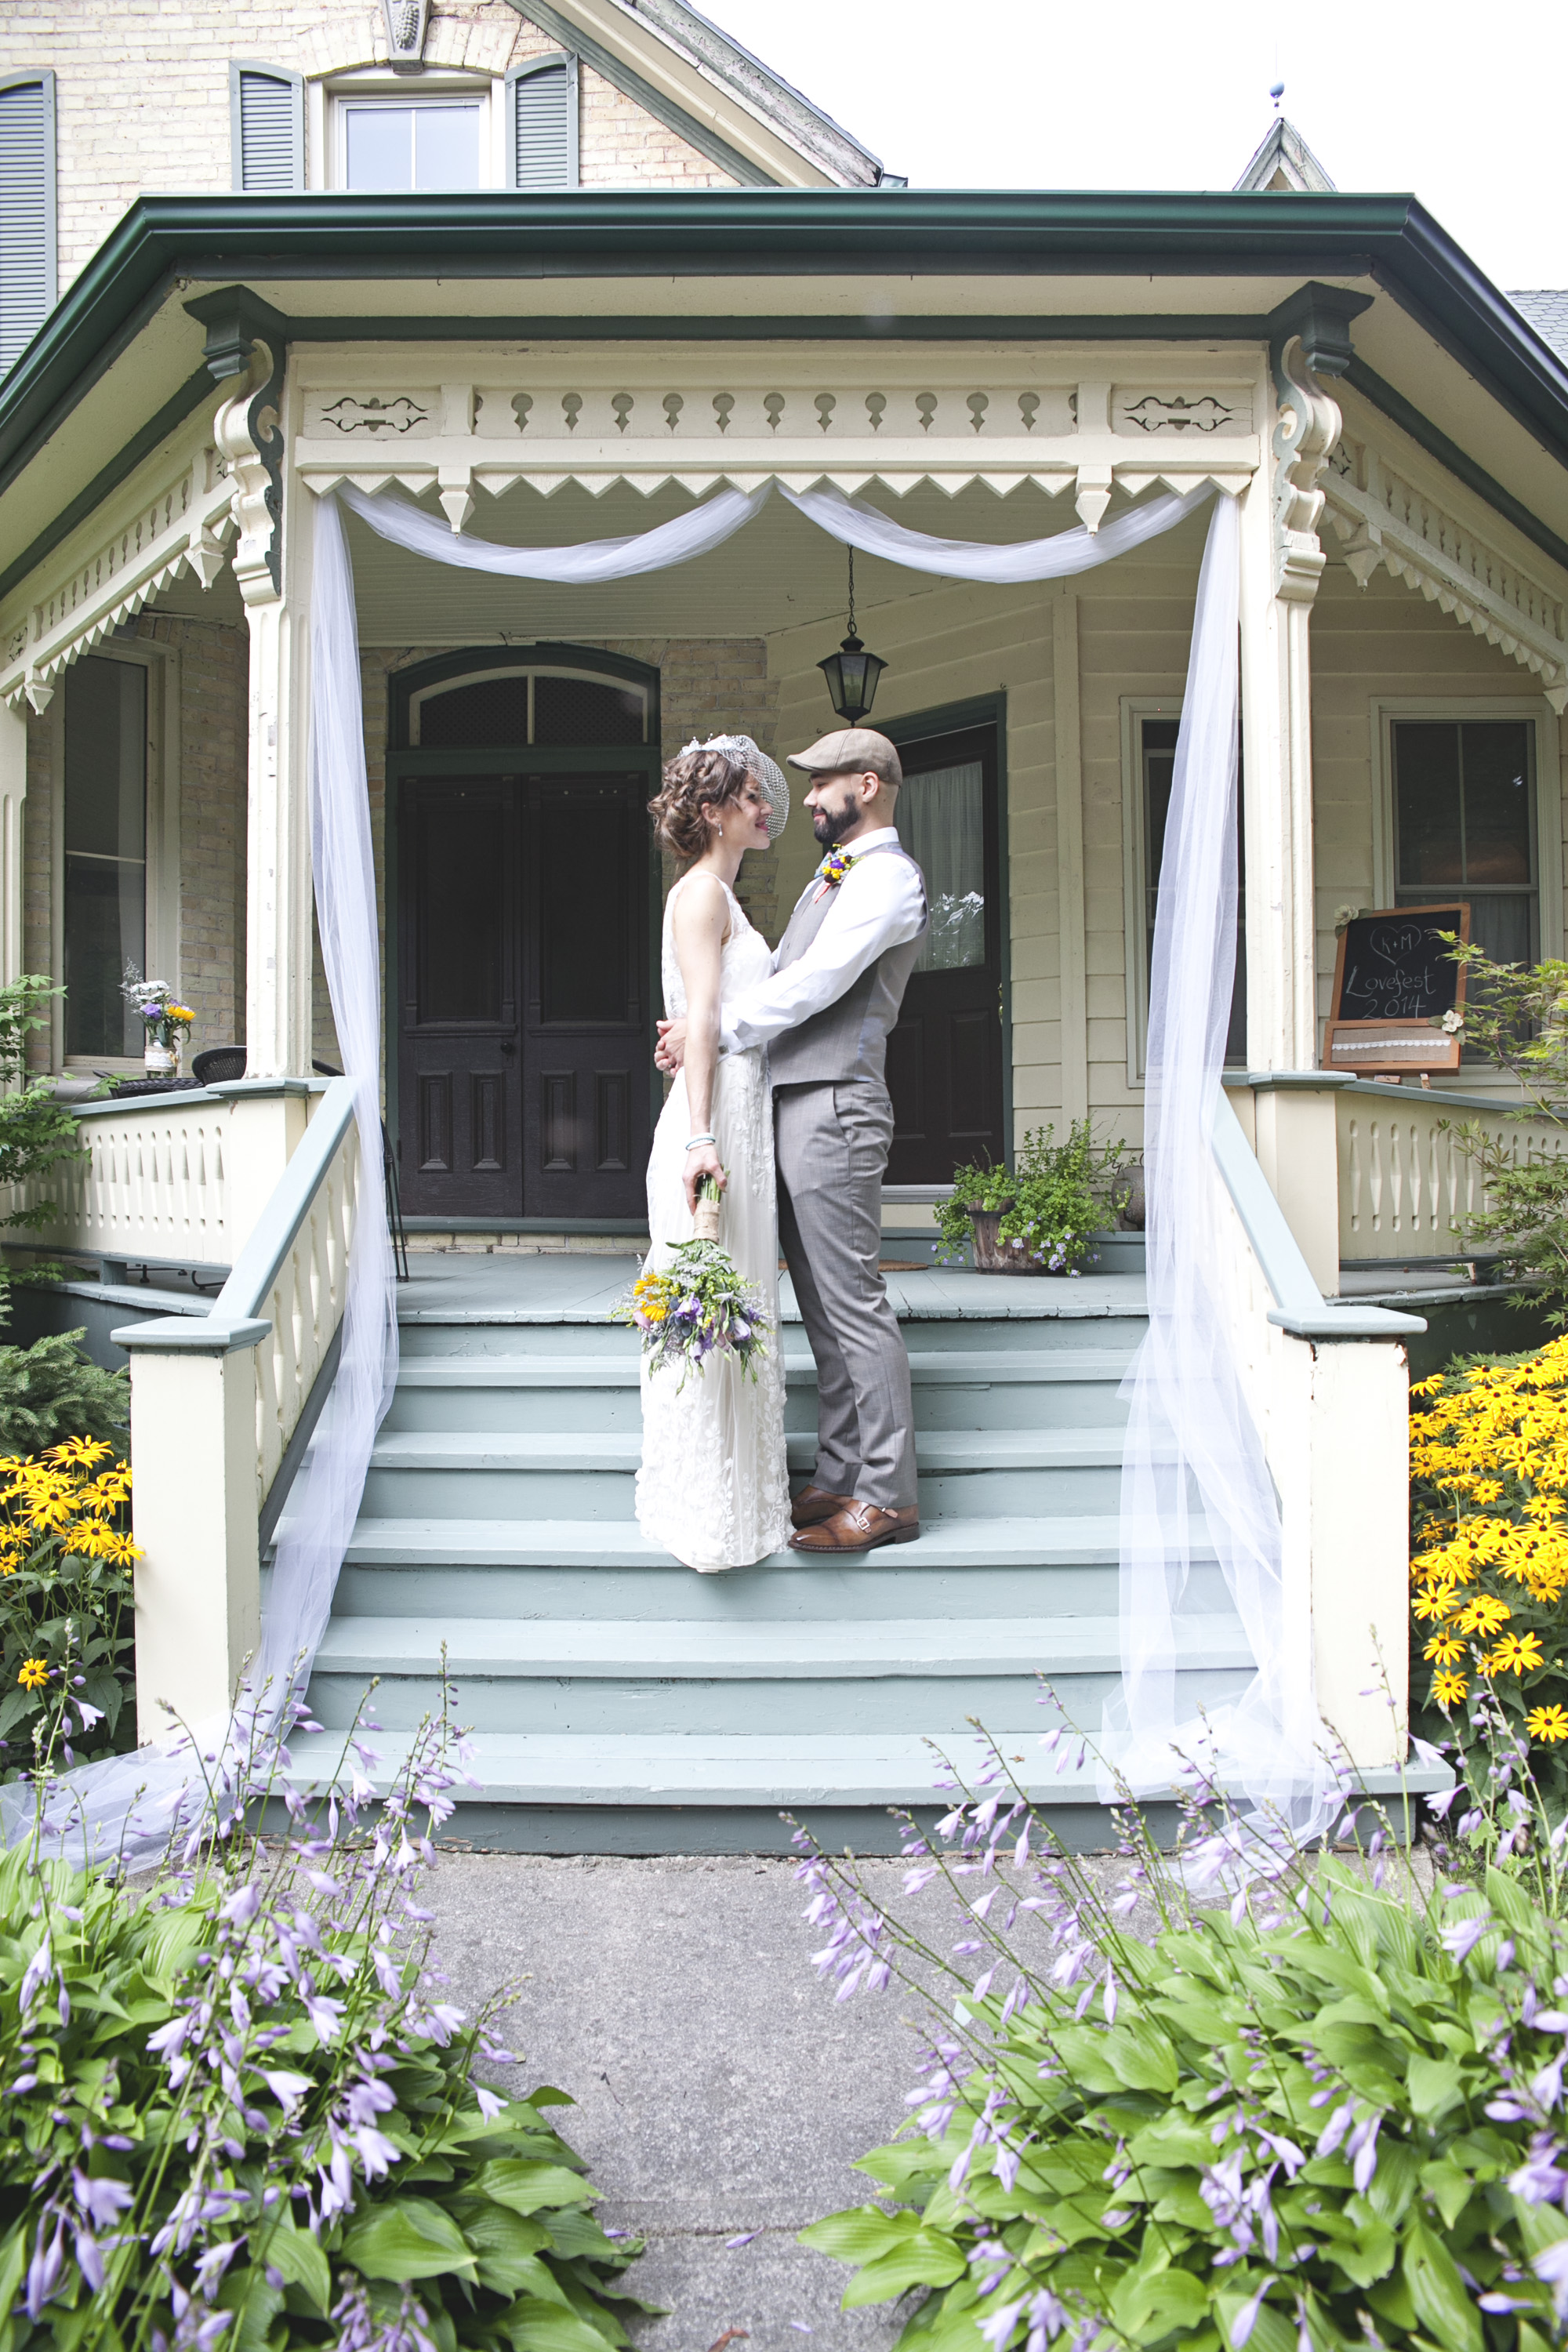 Bride and groom photos at Ontario farm house